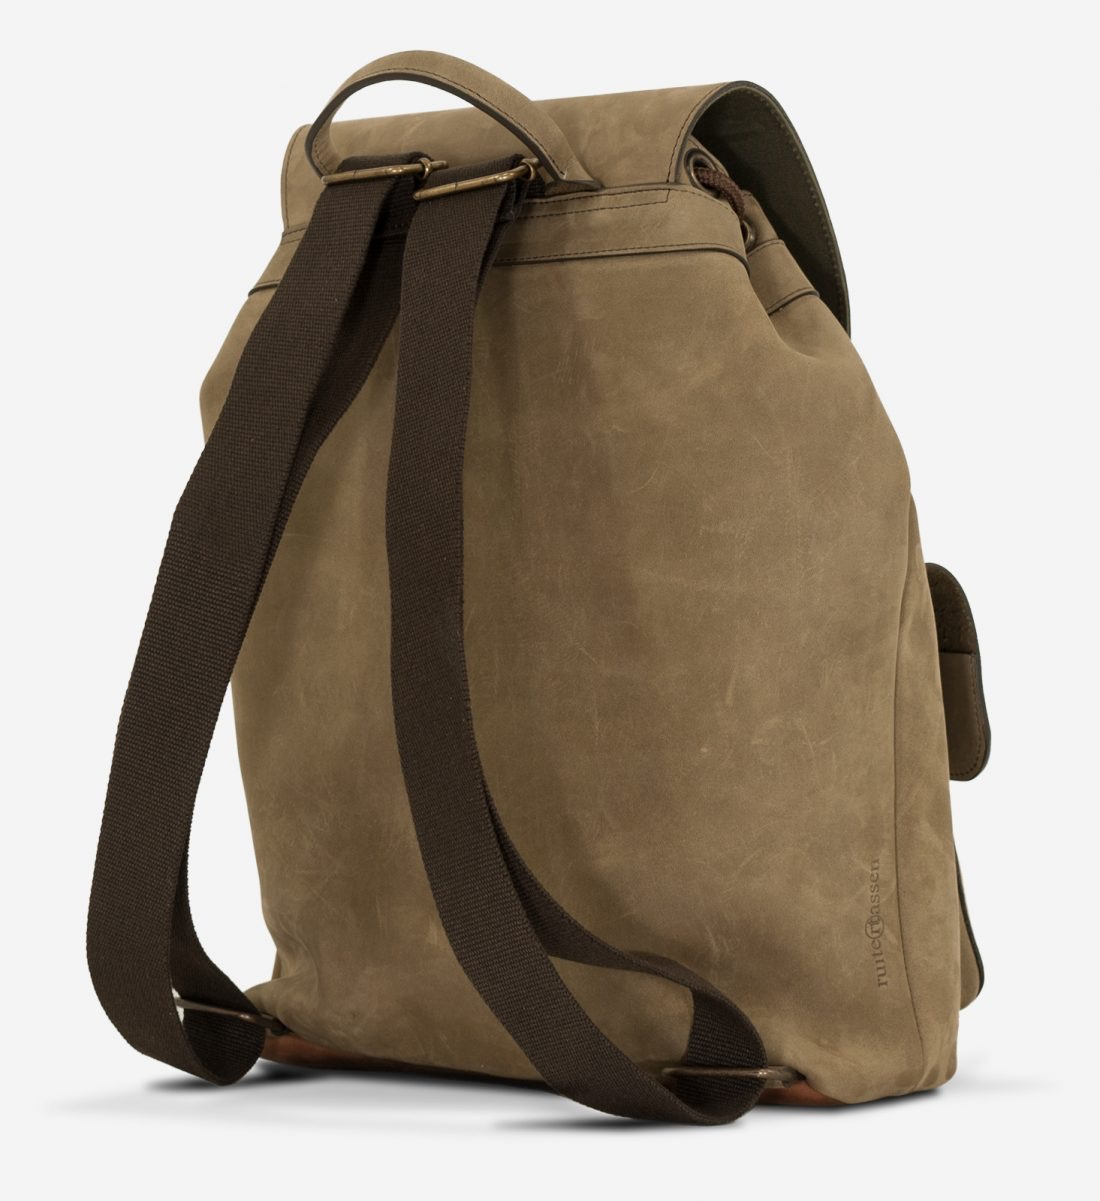 Back view of the handmade soft leather backpack.